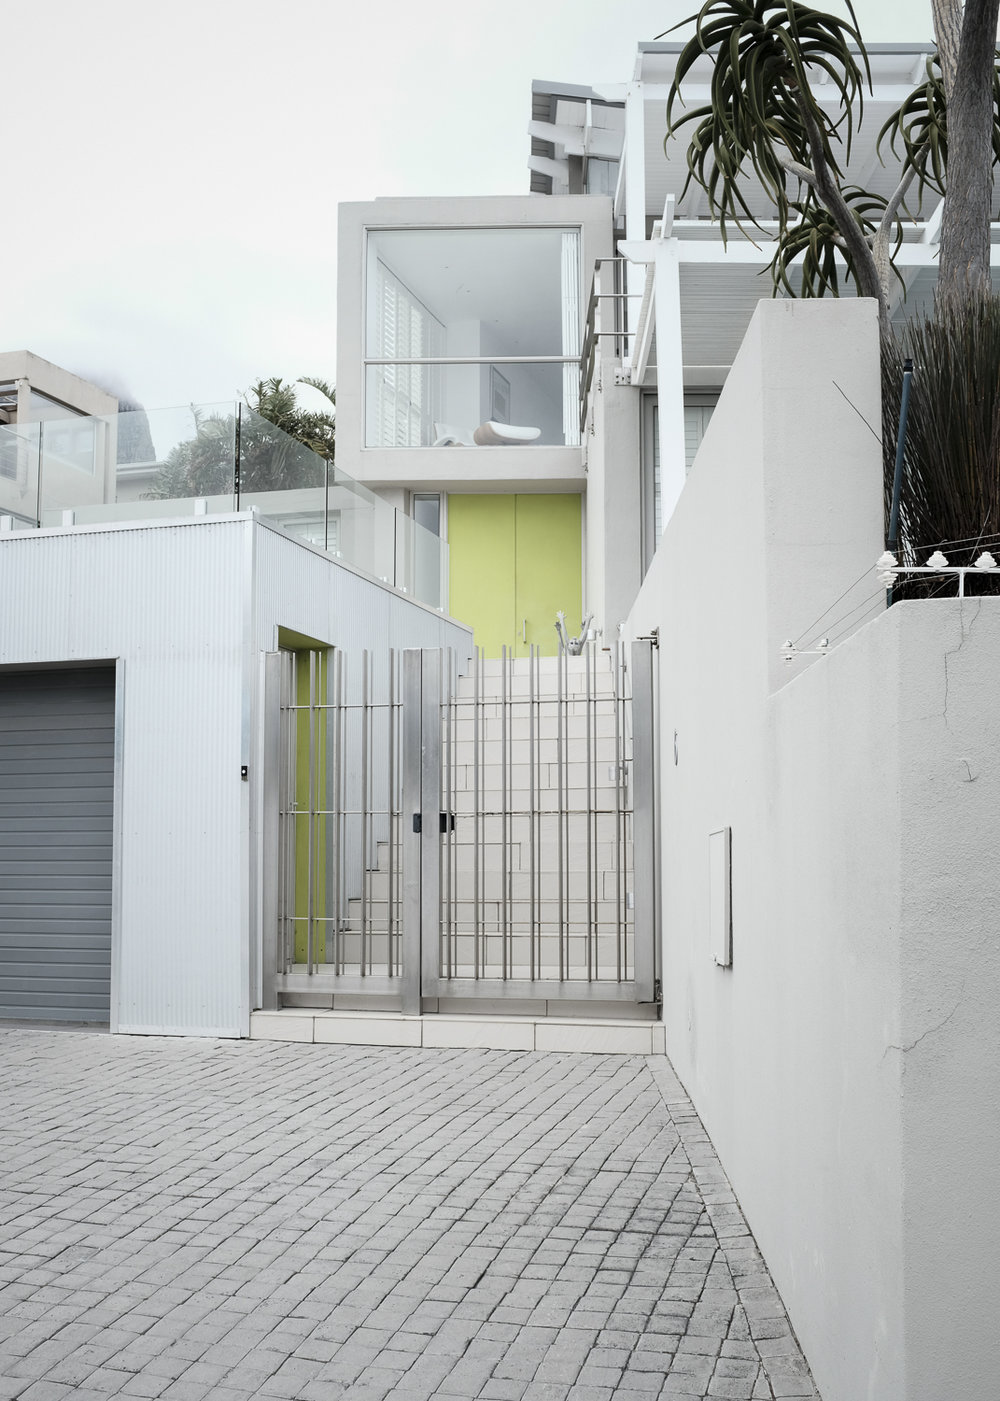 cape-town-south-africa-camps-bay-modern-architecture-1.jpg